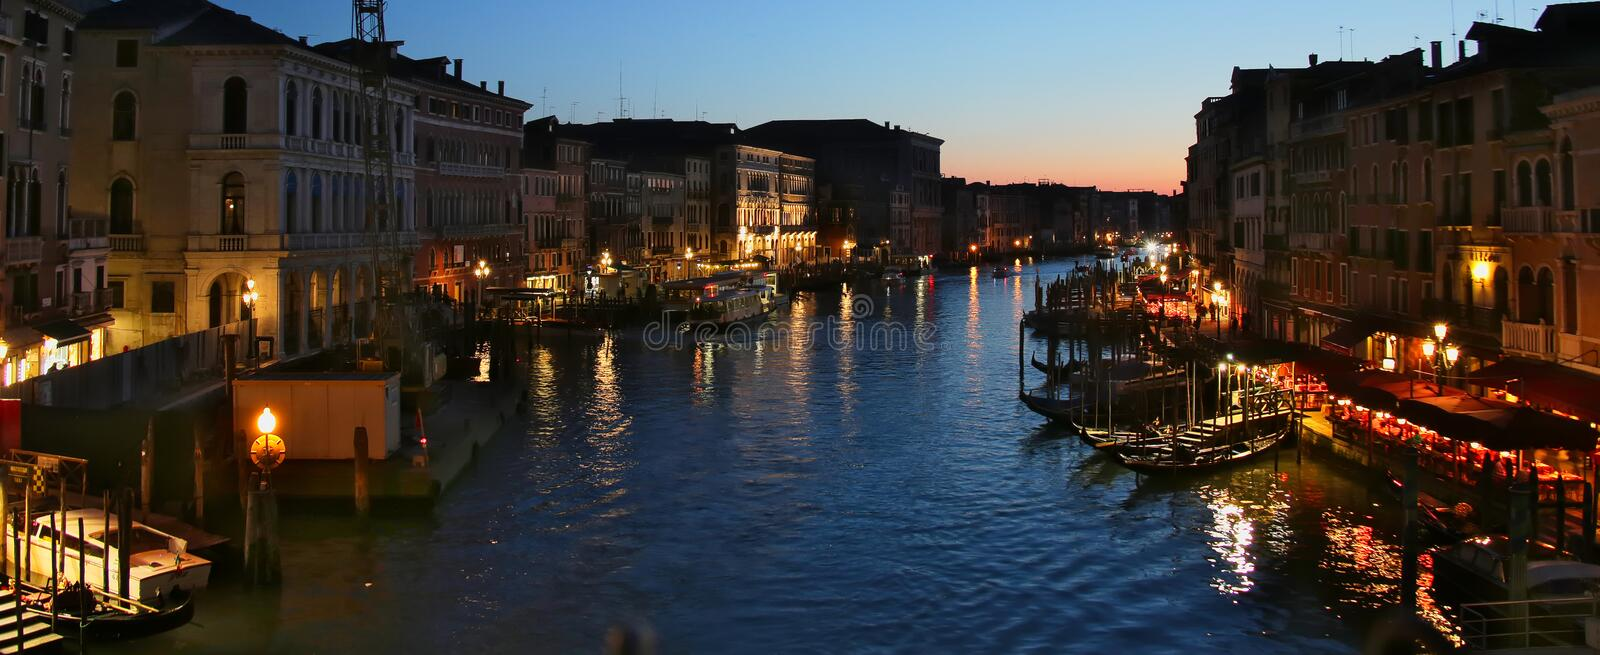 Canal Grande royalty free stock photos